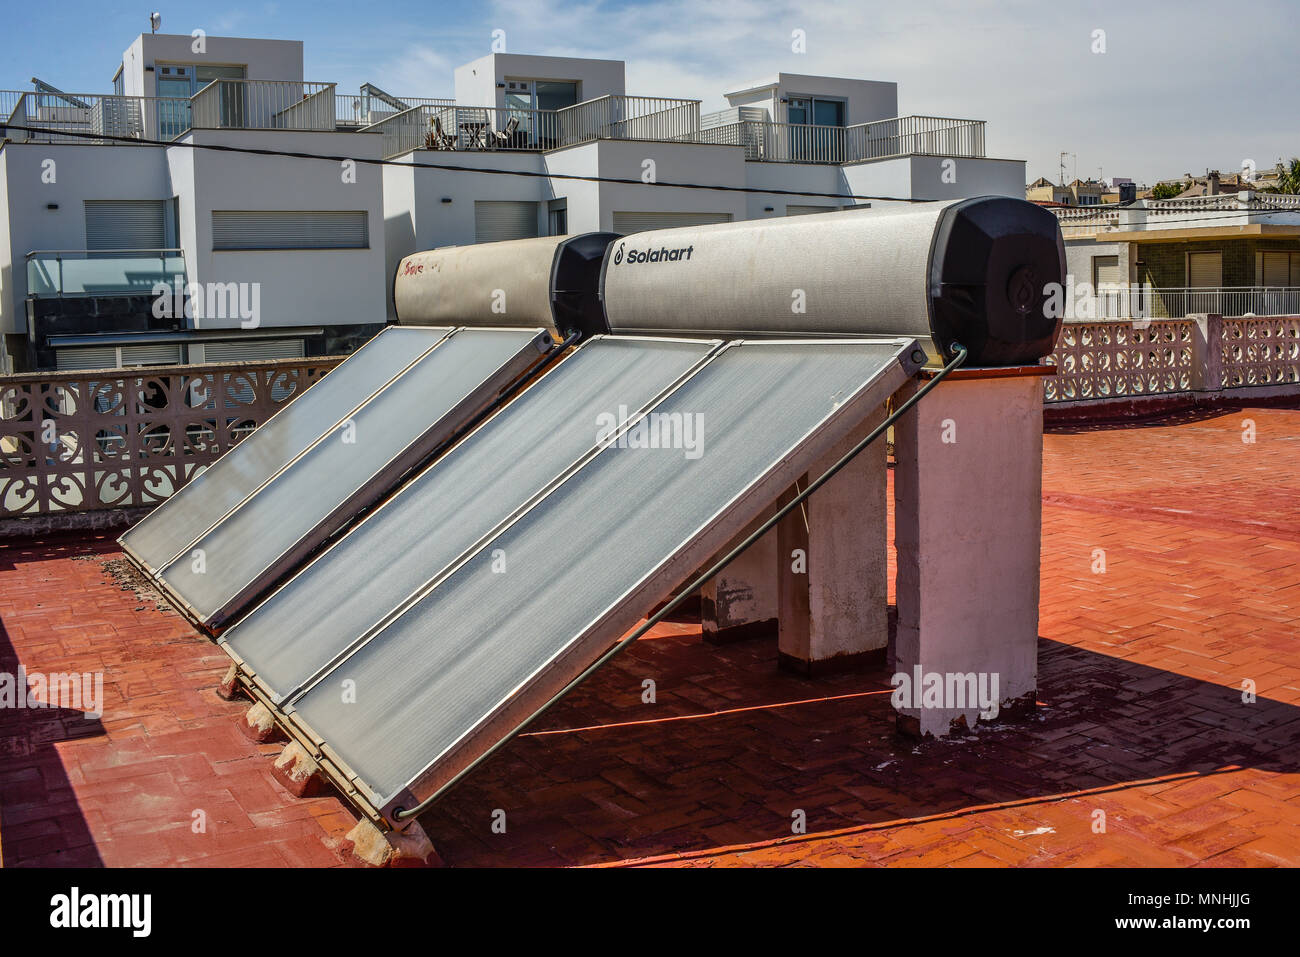 Solahart water heating solar panels. Energy cost saving environmentally friendly hot water system. Flat roof mounted at an angle. Storage - Stock Image